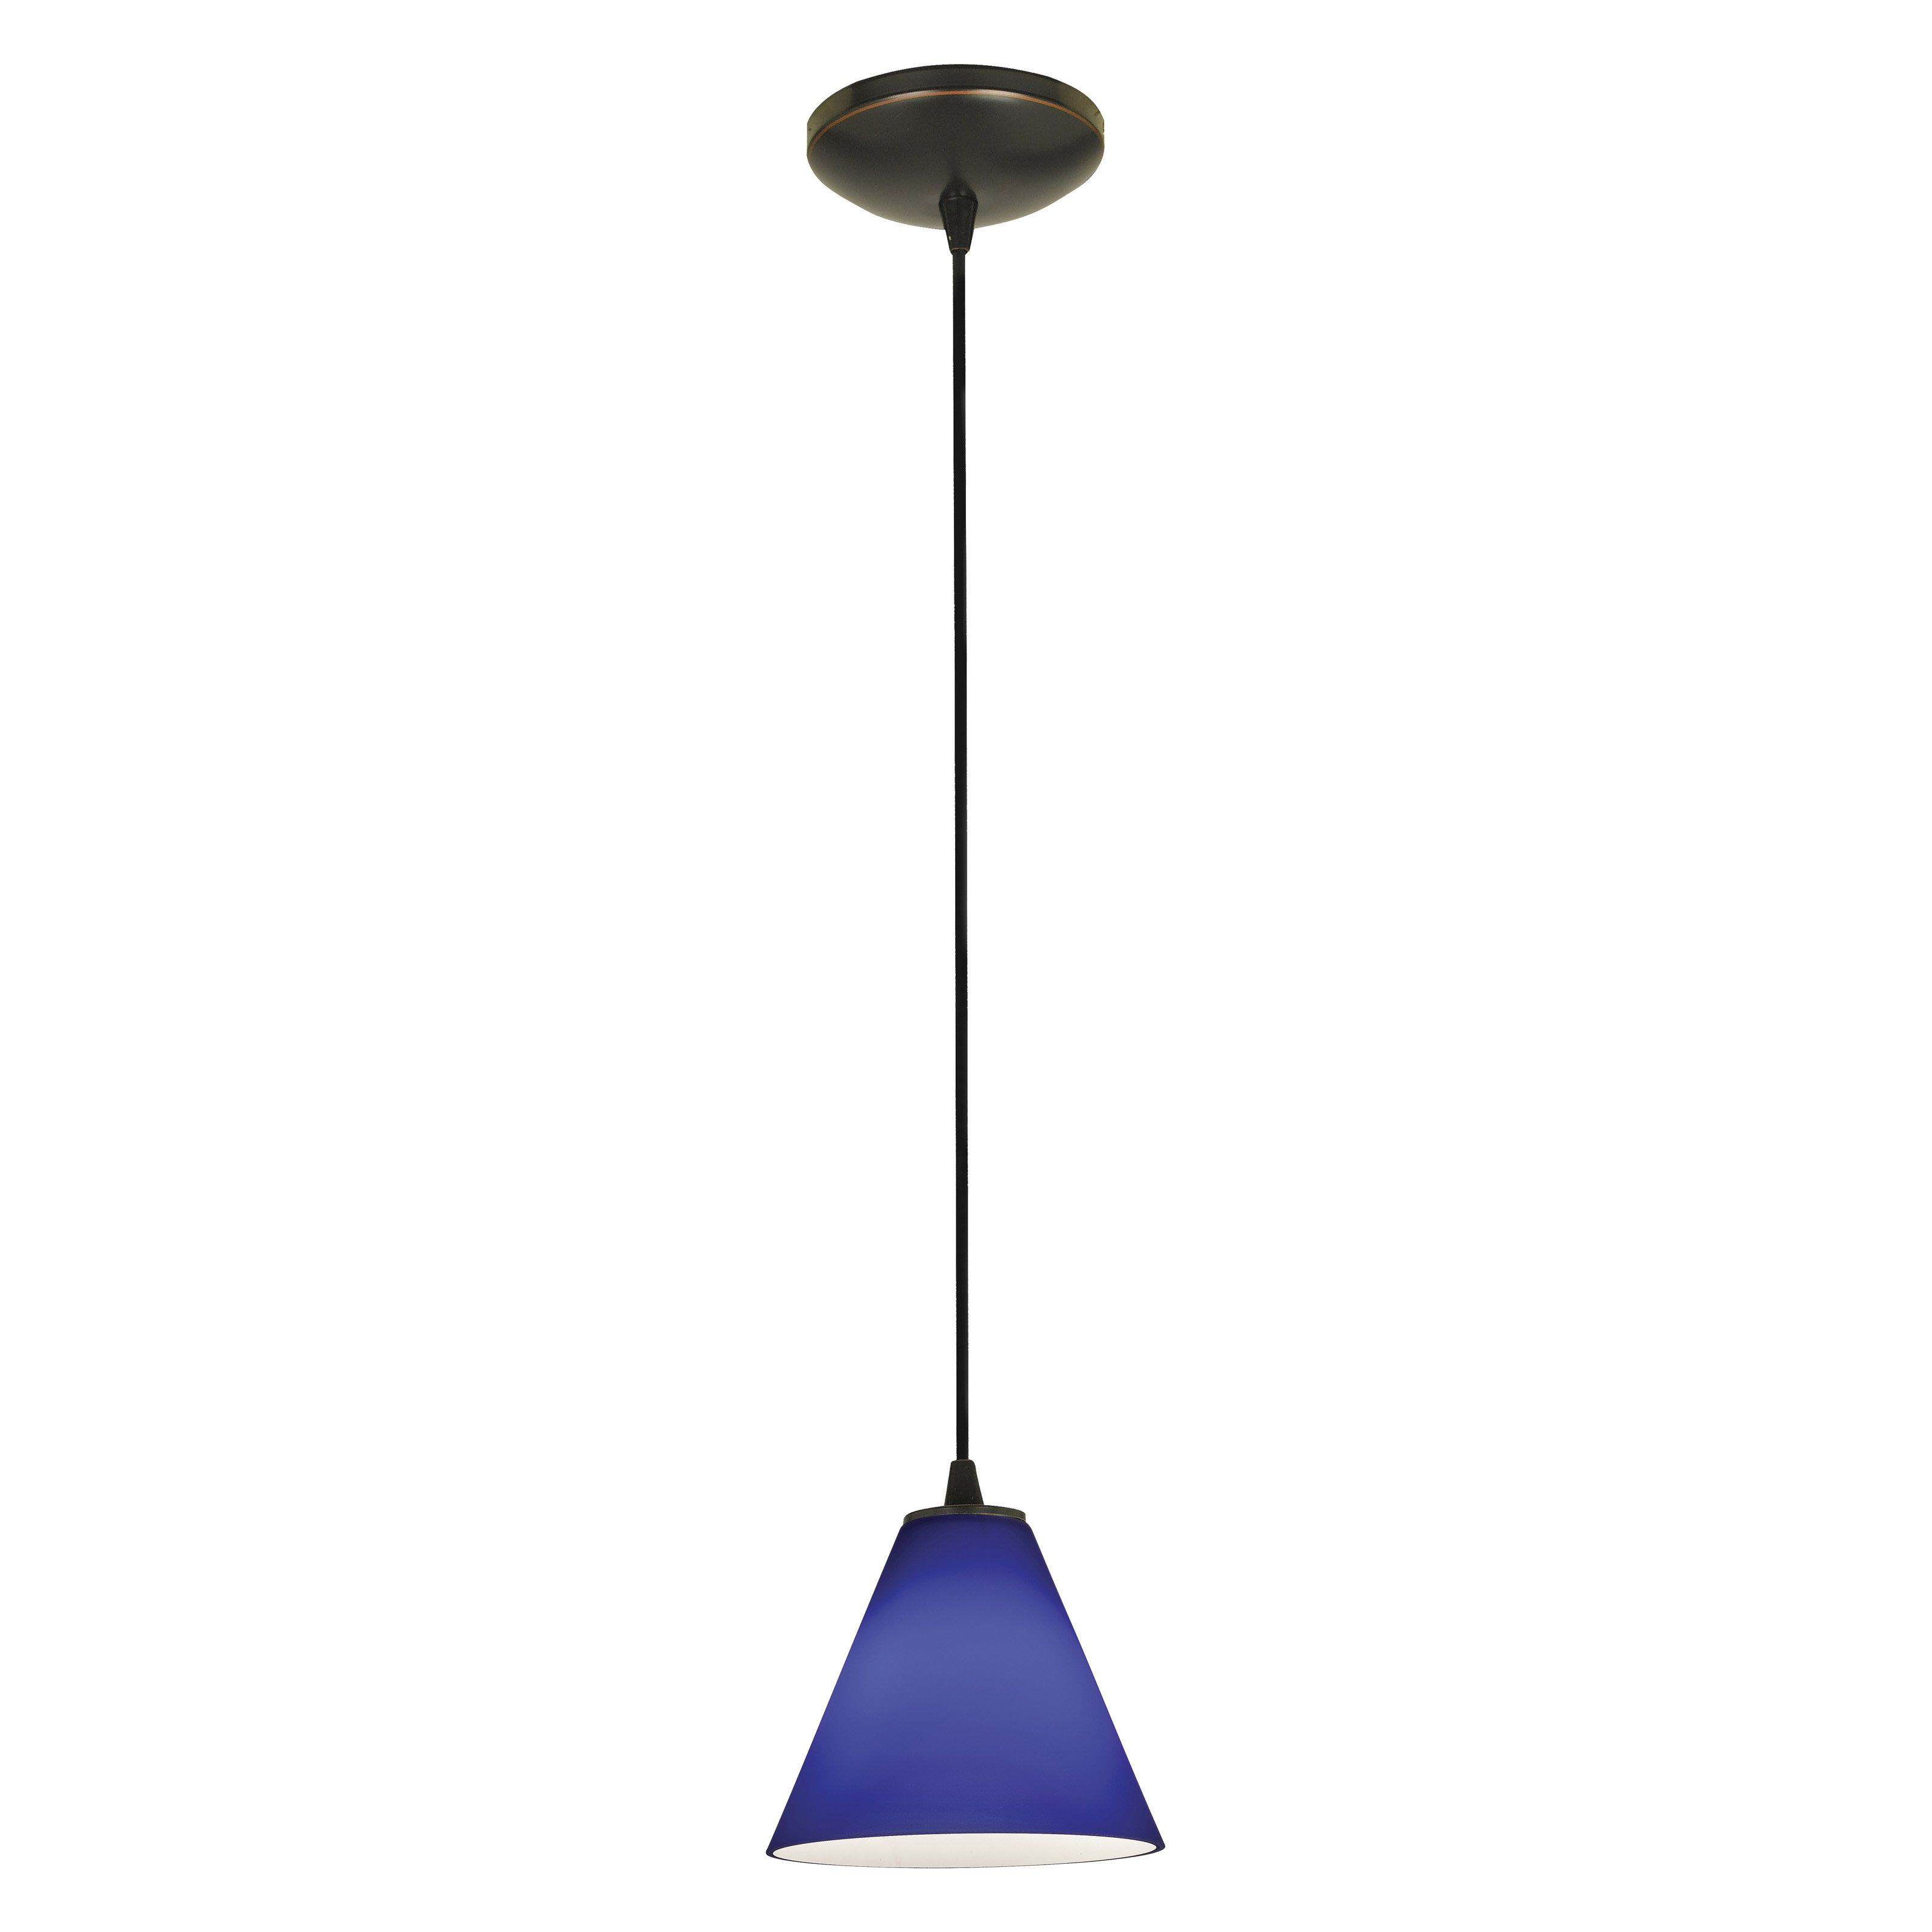 Access lighting martini 28004 4c pendant light from hayneedle explore martinis pendant lights and more aloadofball Images